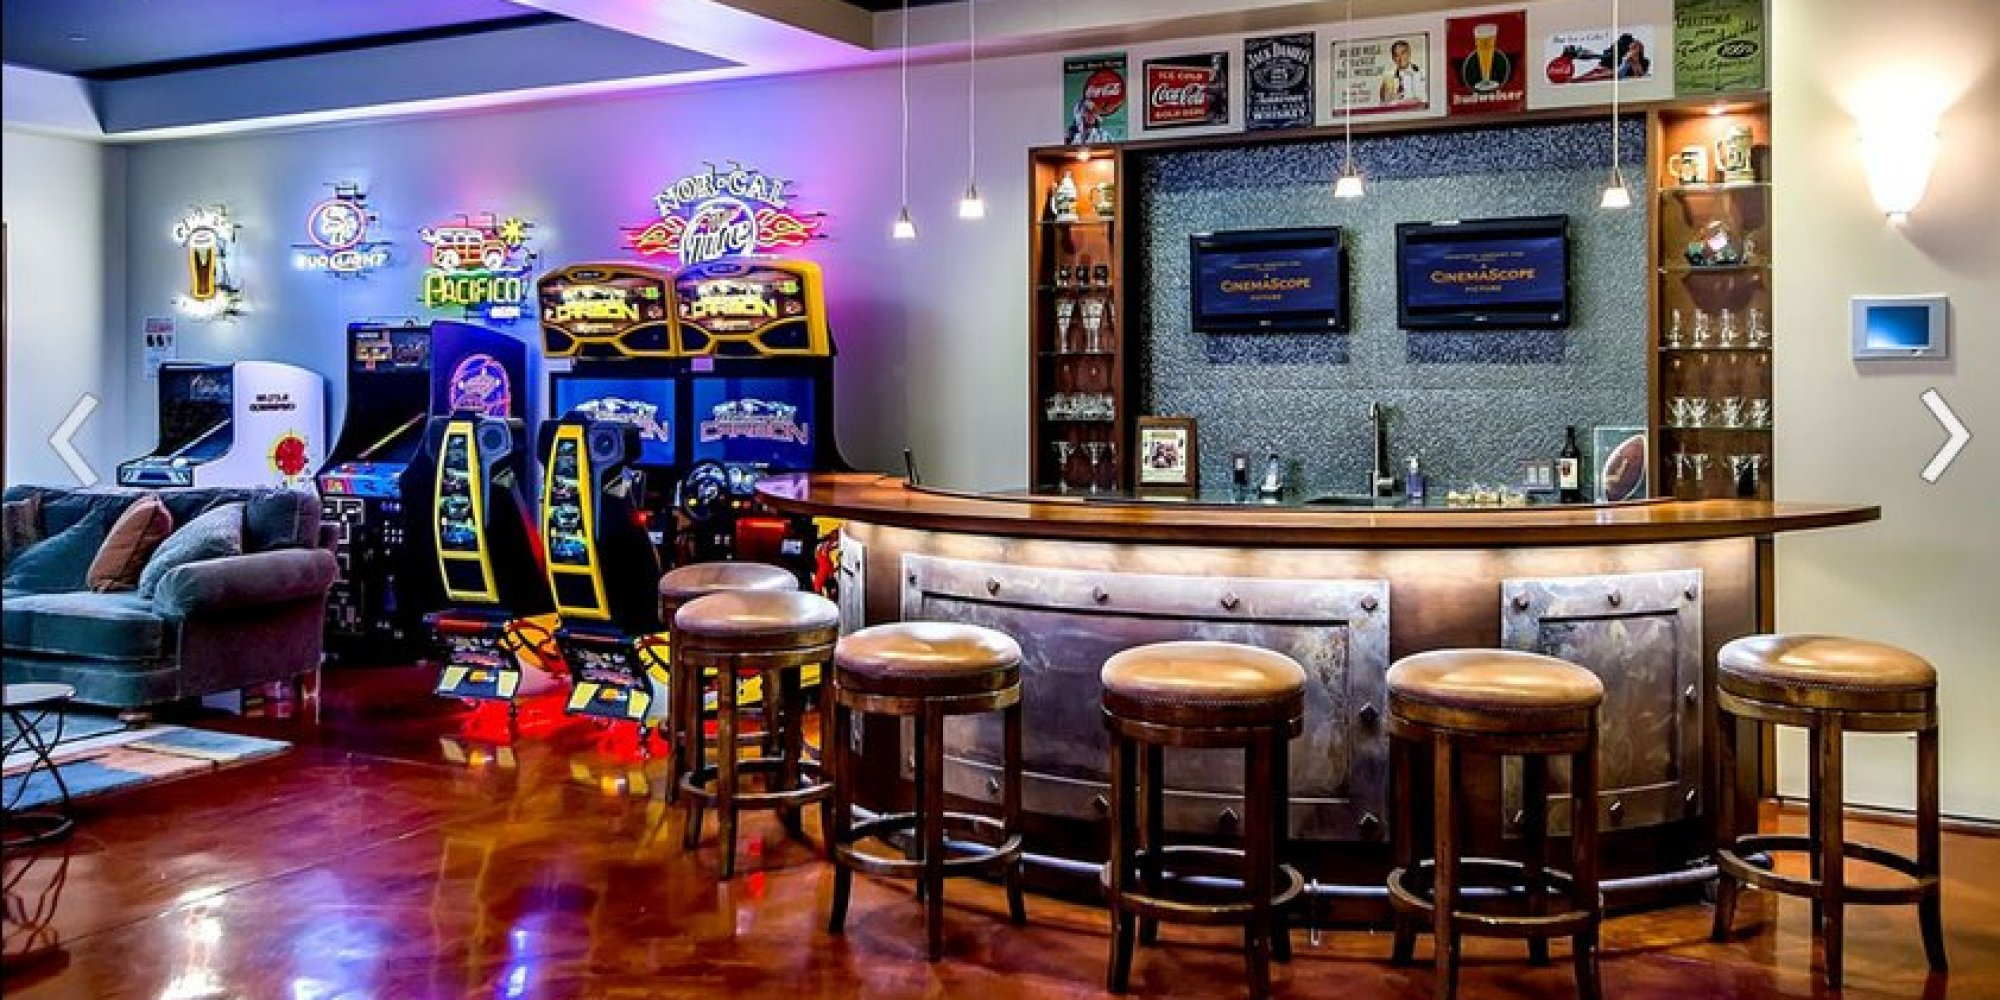 Awesome Arcade Room With Full Bar Is The Room You 39 D Never